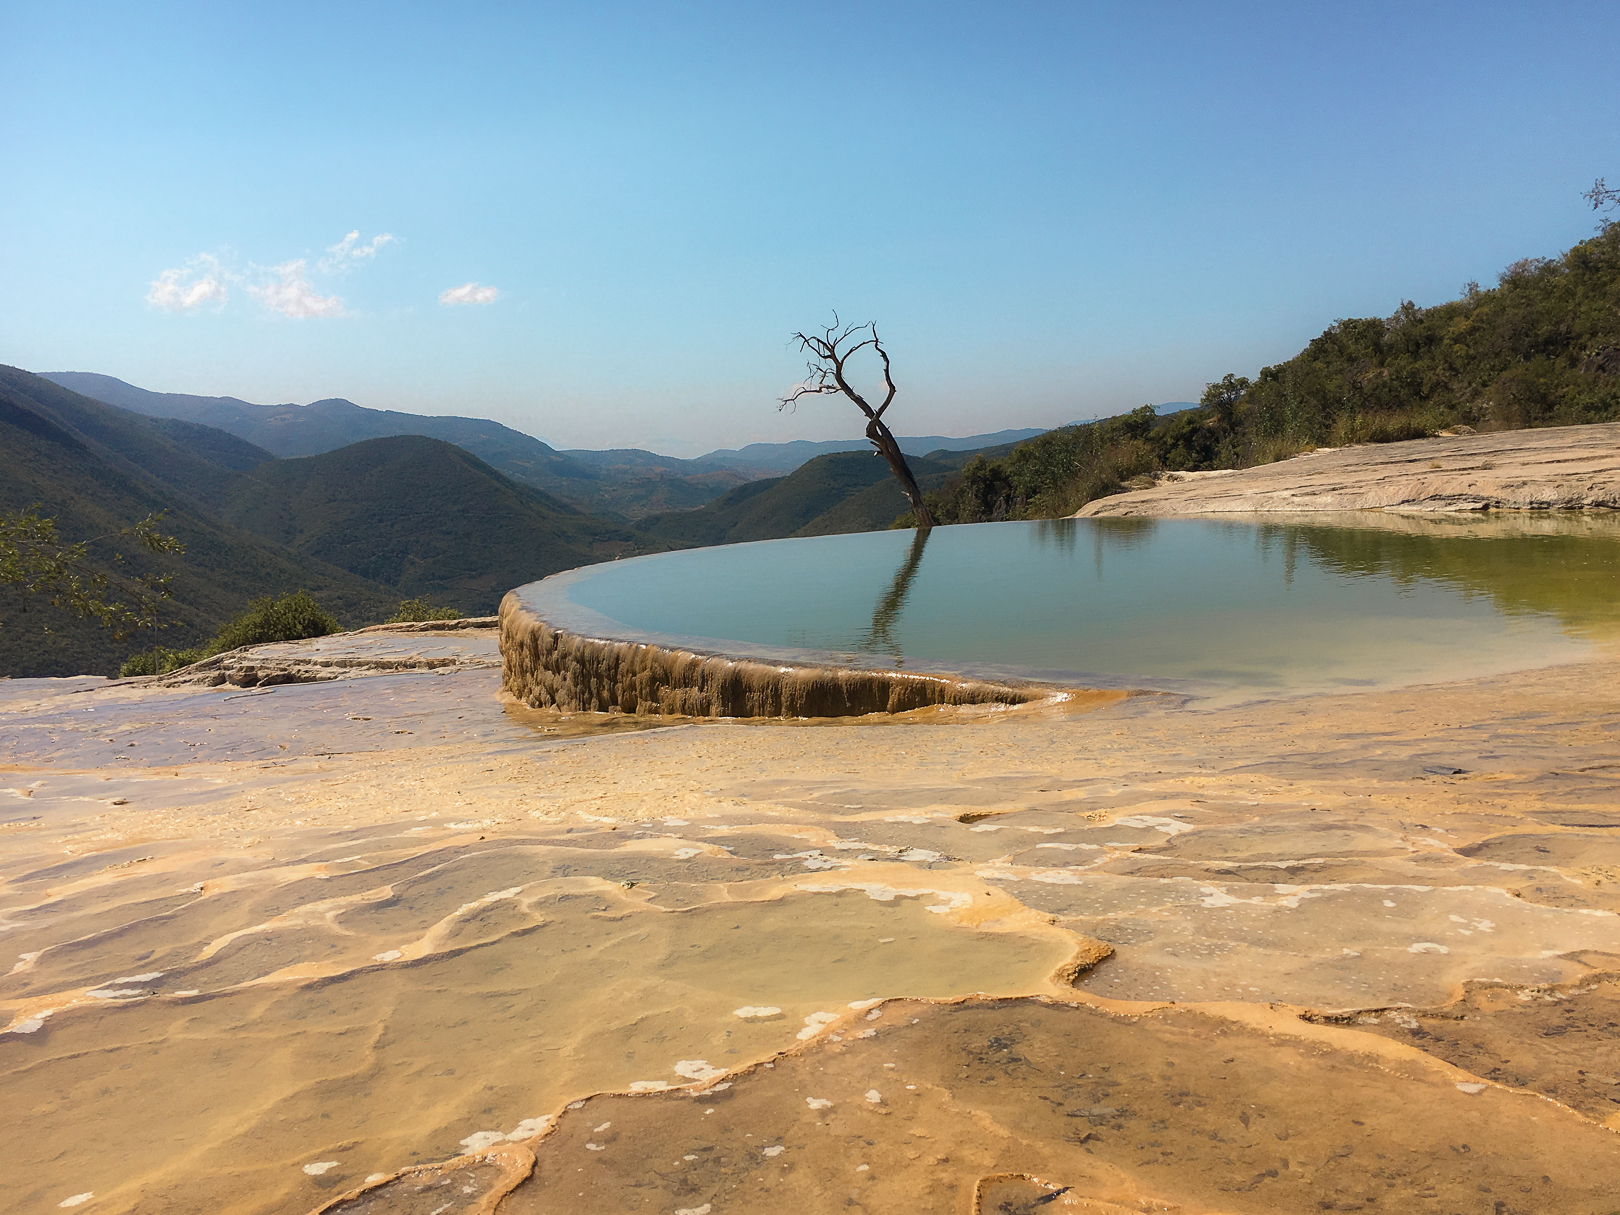 Mineral concentrations provide pools of turquoise-green water atop the cascada chica (small waterfall) of Hierve el Agua in the Mexican state of Oaxaca.